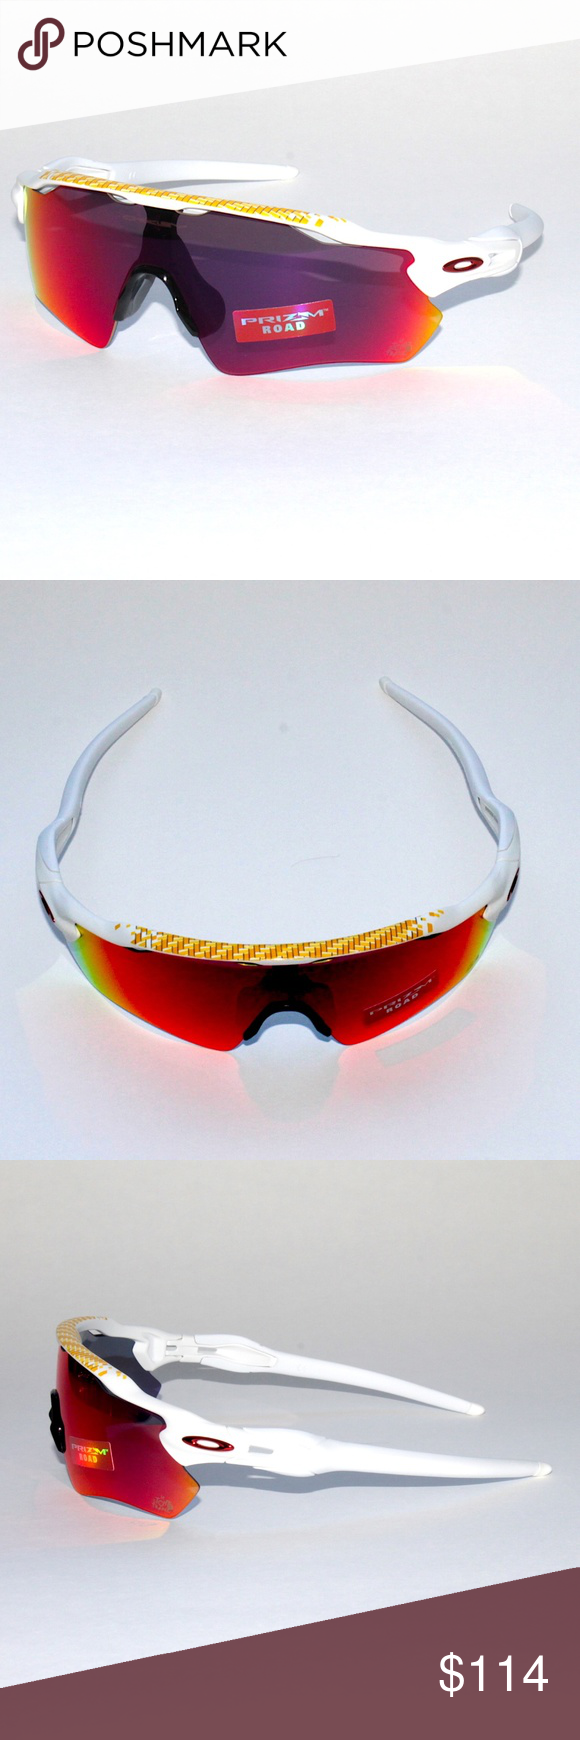 1823904a56 Oakley Radar EV Path OO9208-5038 Tour De France Brand New 100% Authentic Oakley  Radar EV Path Sunglasses ‑ Tour De France Prizm Road OO9208-5038 128 Matte  ...